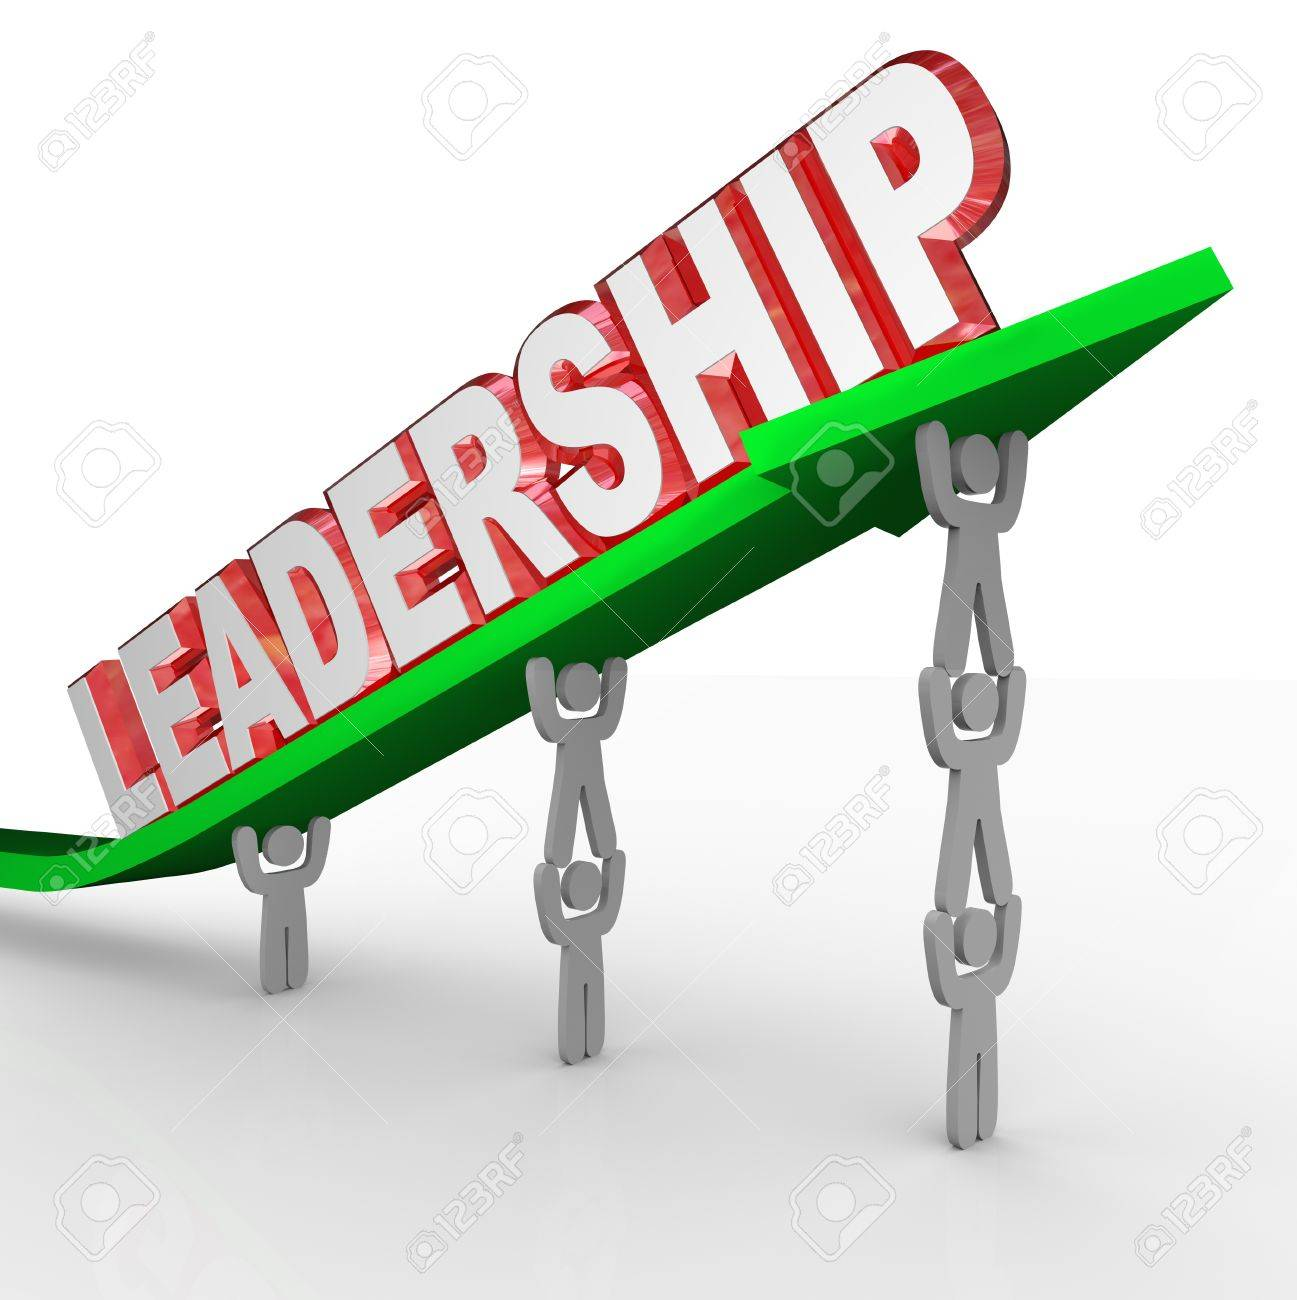 A team of people in an organization lifting an arrow with the word Leadership to symbolize management, direction and vision Stock Photo - 18781431